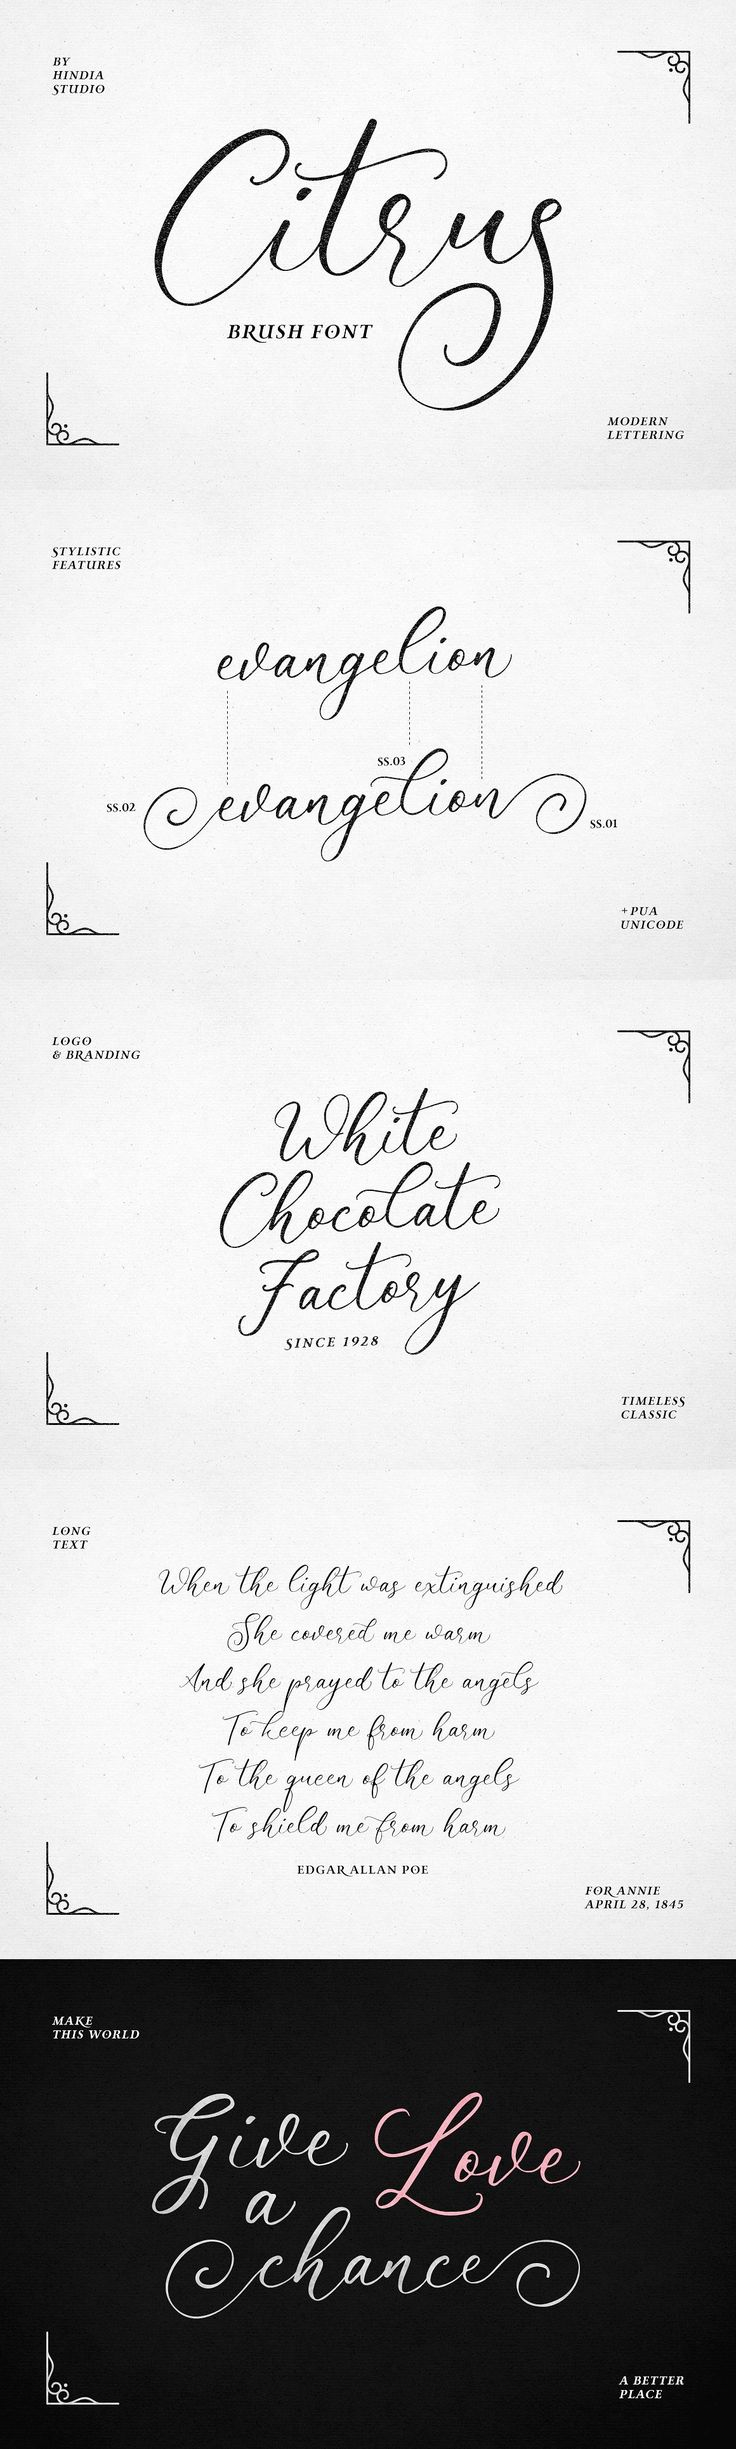 cursive fonts for wedding cards%0A It feels natural  friendly  and timeless  Citrus script can be used for  various purposes such as wedding invitations  thank you cards